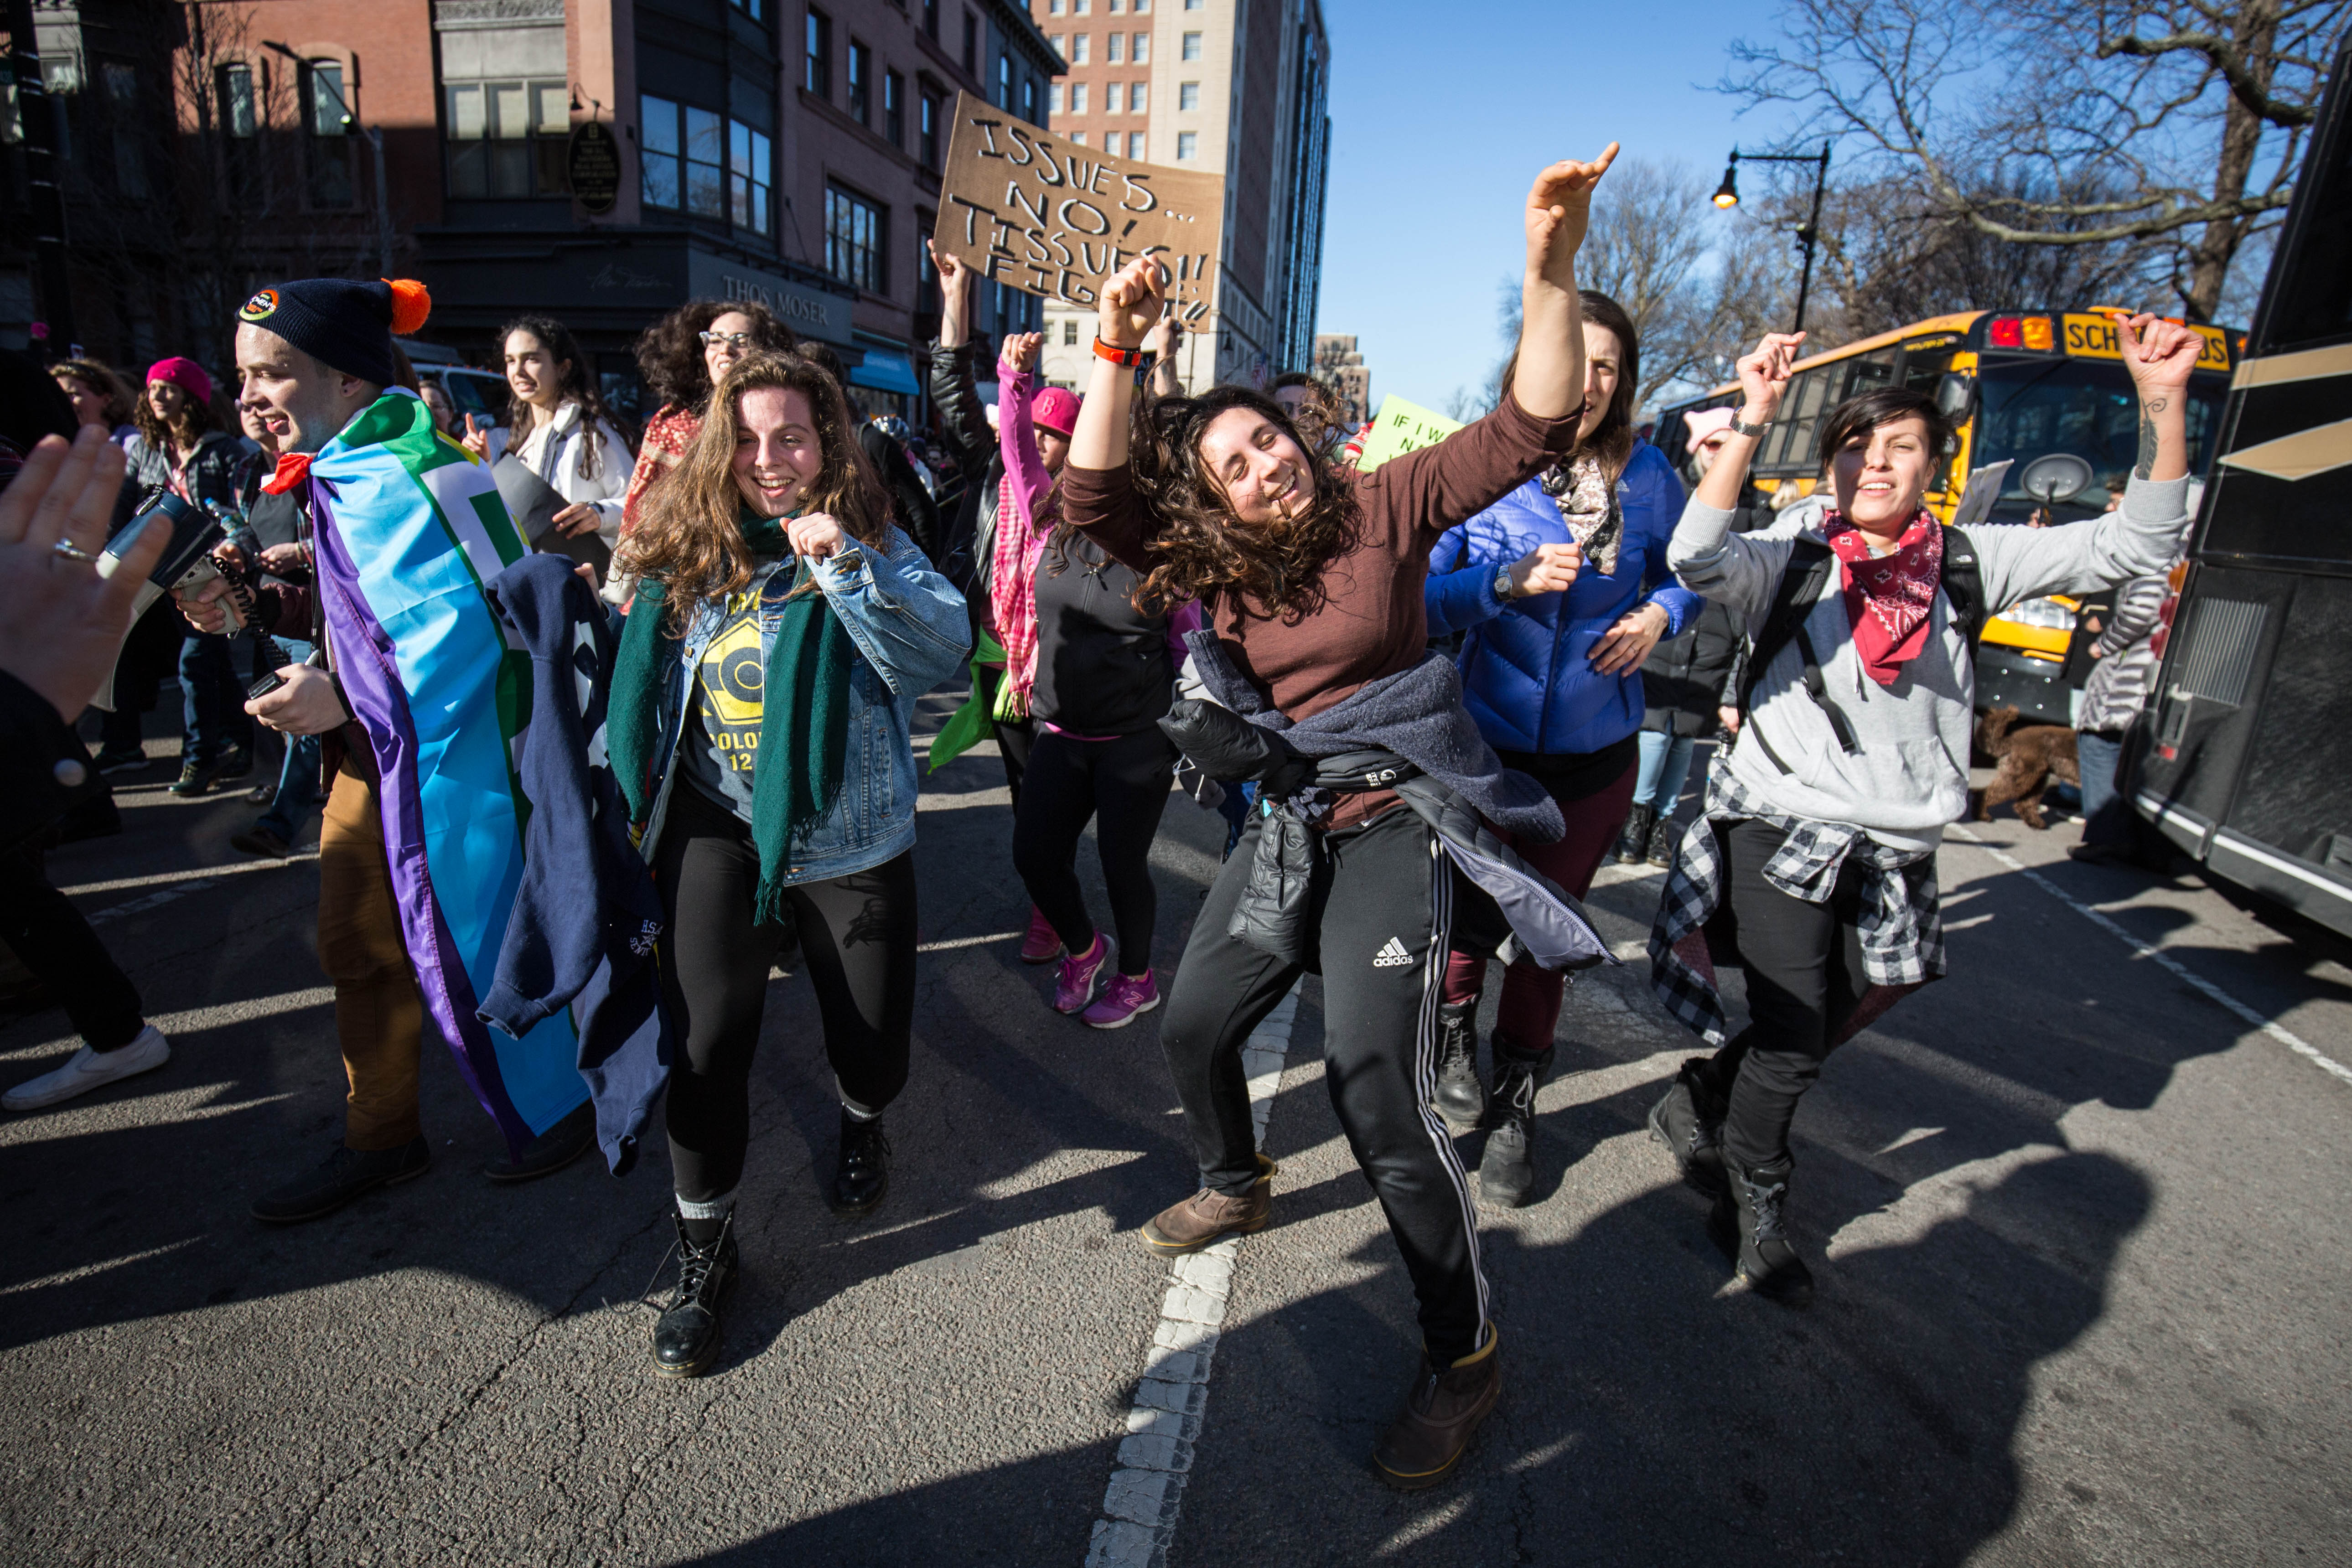 Marchers follow a band and dance in the streets during the Boston Women's March on Jan. 21, 2017 (Photo by Alastair Pike).